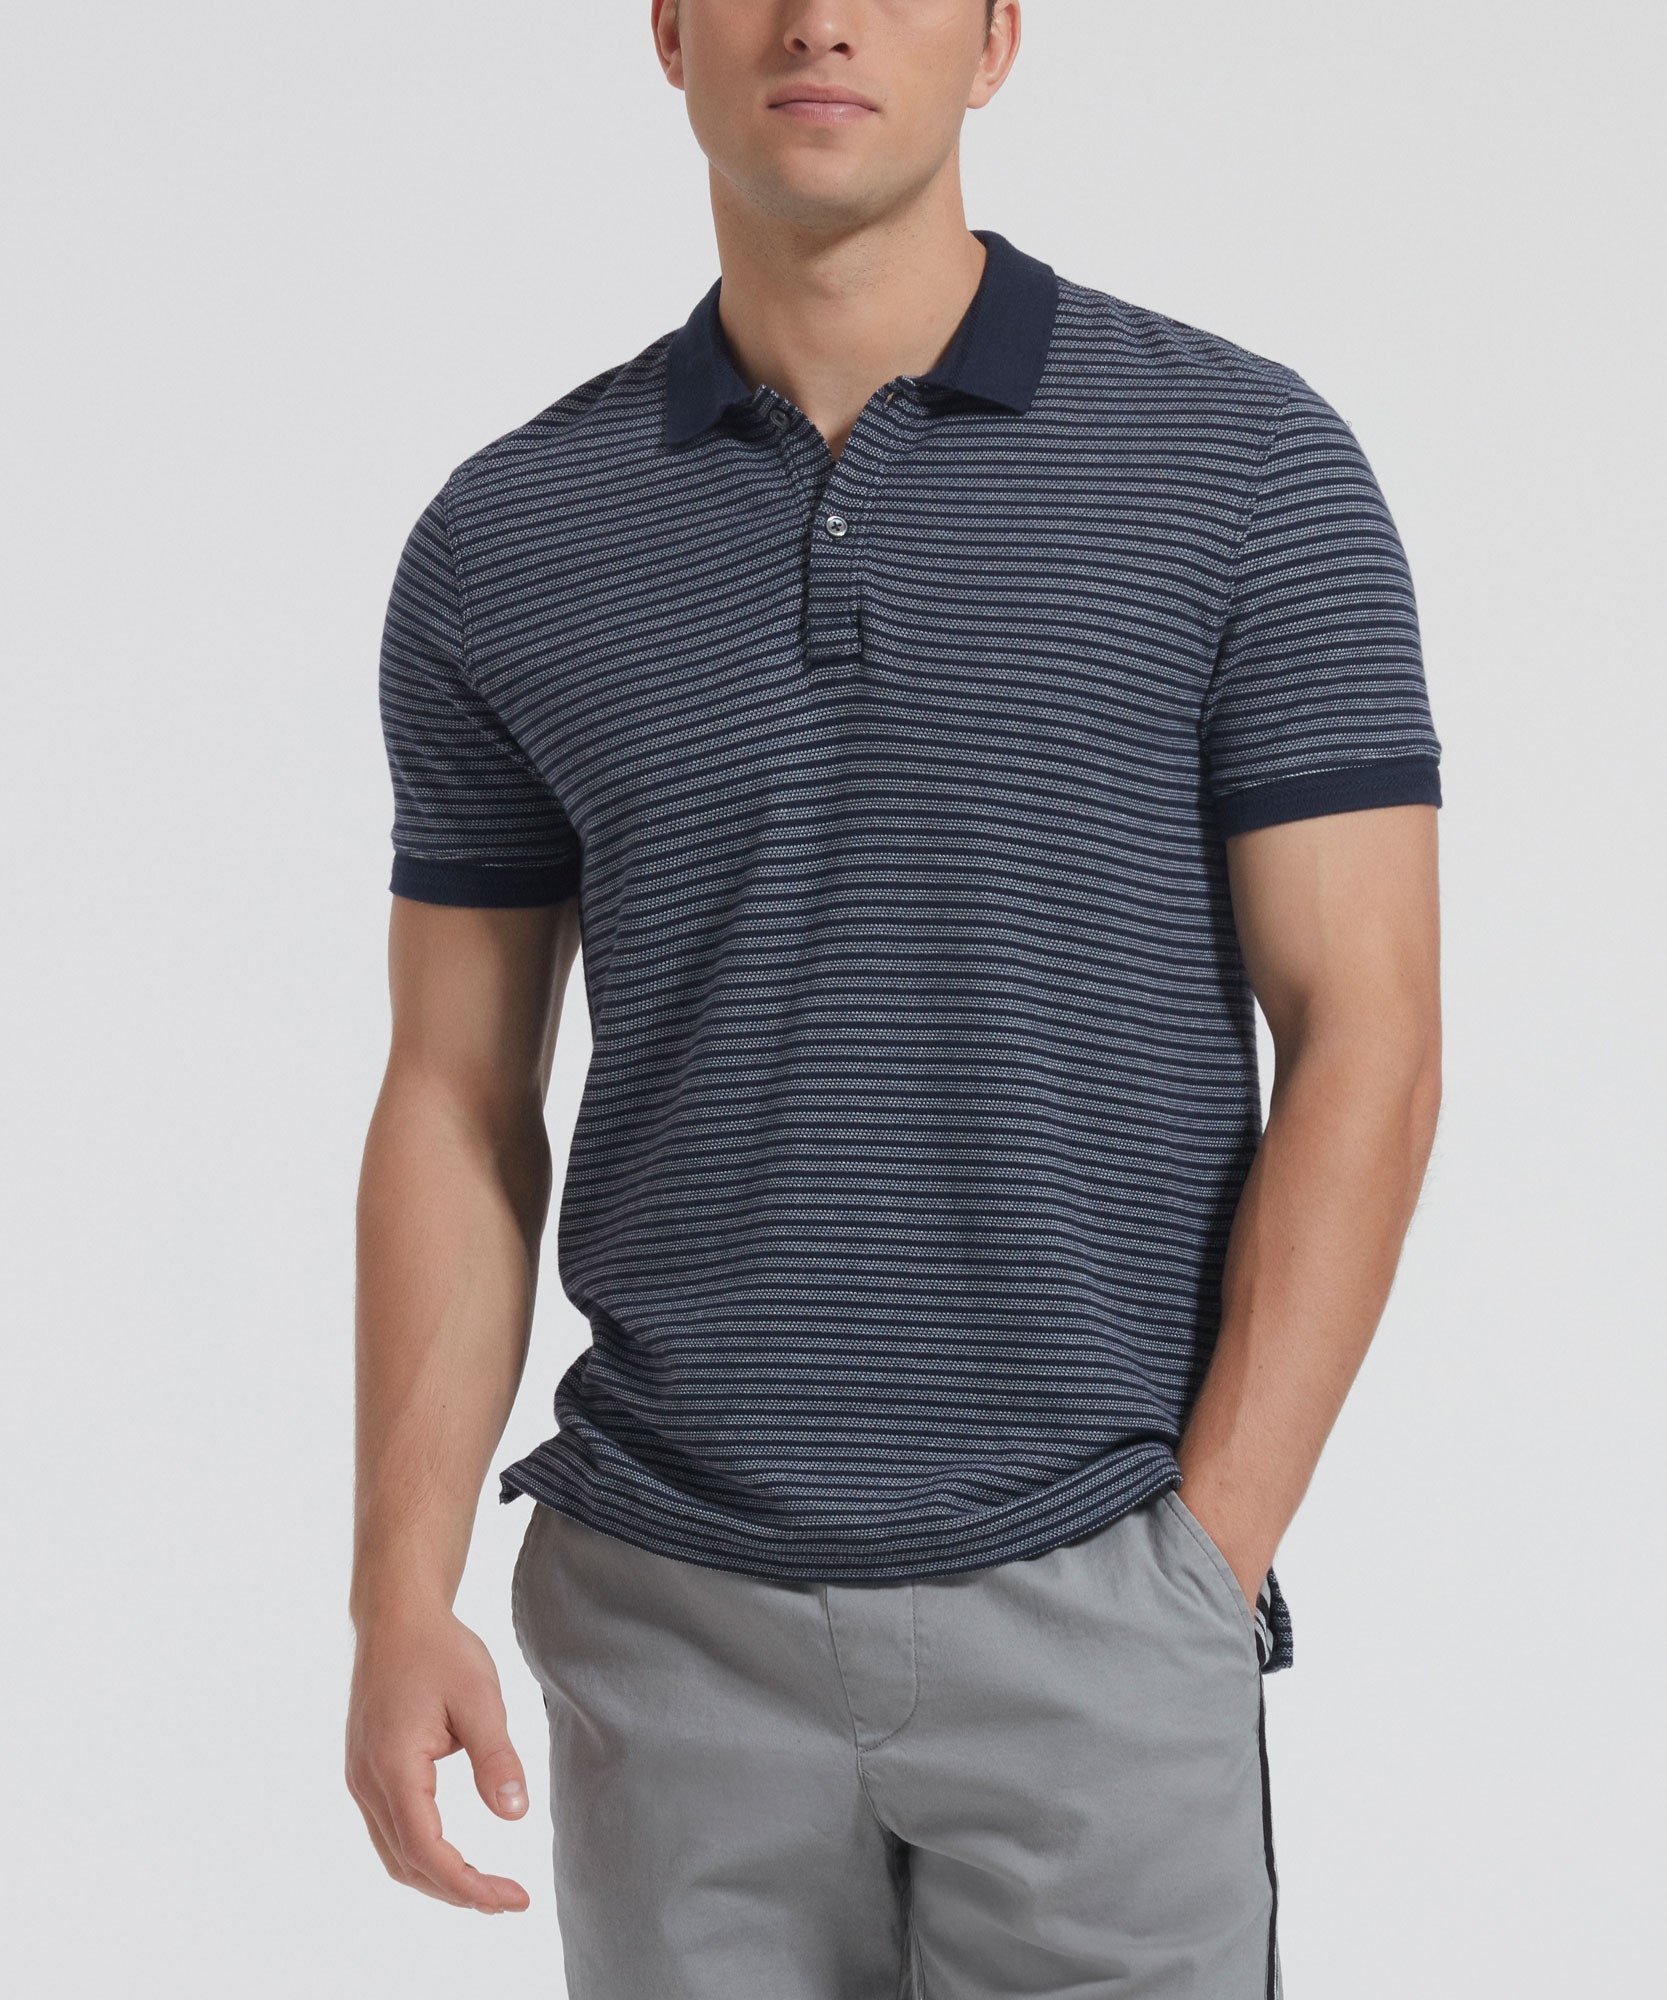 Midnight Striped Pique Polo - Men's Cotton Polo Shirt by ATM Anthony Thomas Melillo